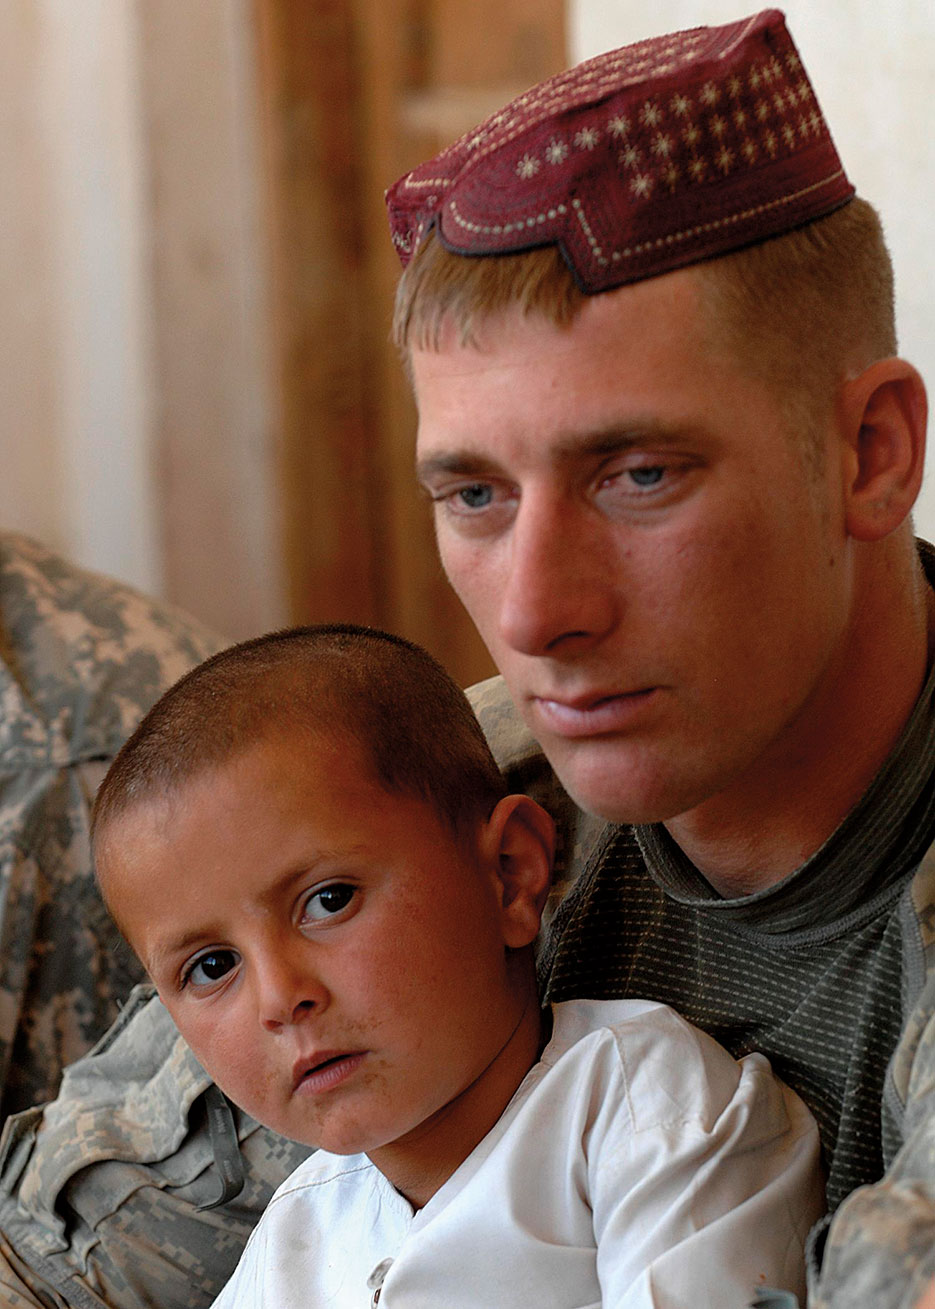 Soldier holds Afghan child and wears Kandahari hat to show solidarity during key leader meeting in Koshab Village near Kandahar Air Field, Afghanistan (U.S. Army/Stephen Schester)